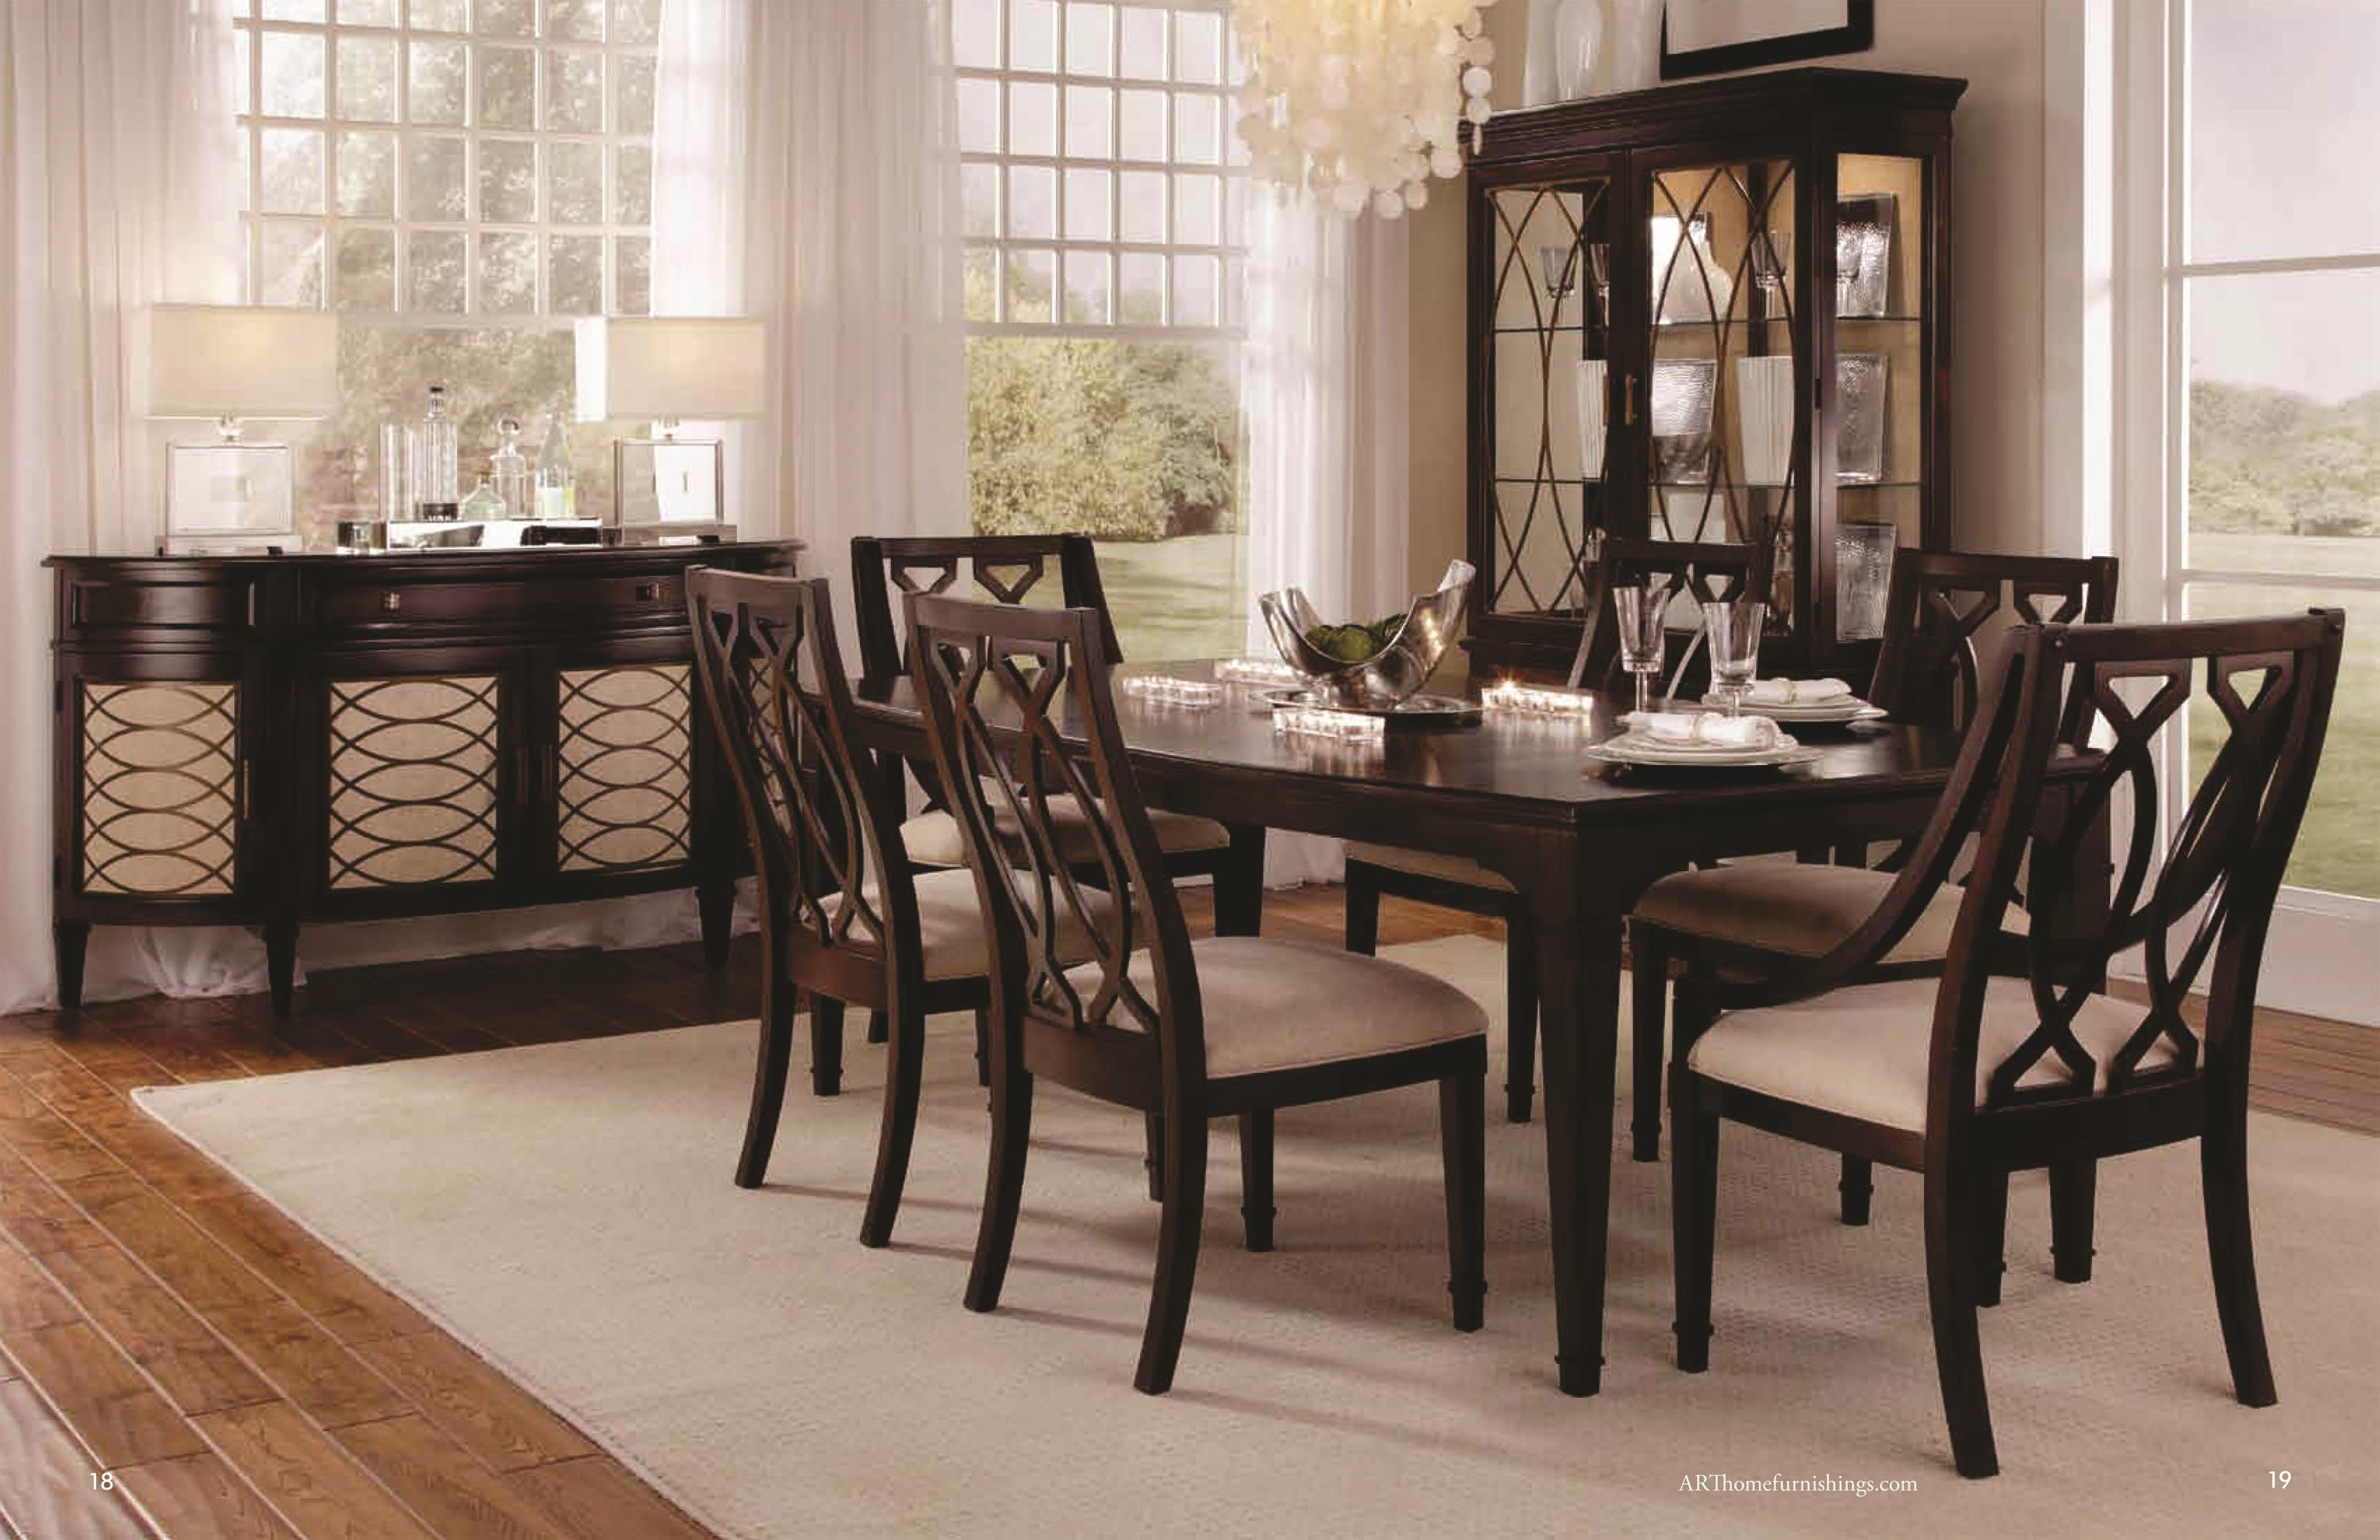 A R T Furniture Inc Intrigue Formal Dining Room Group